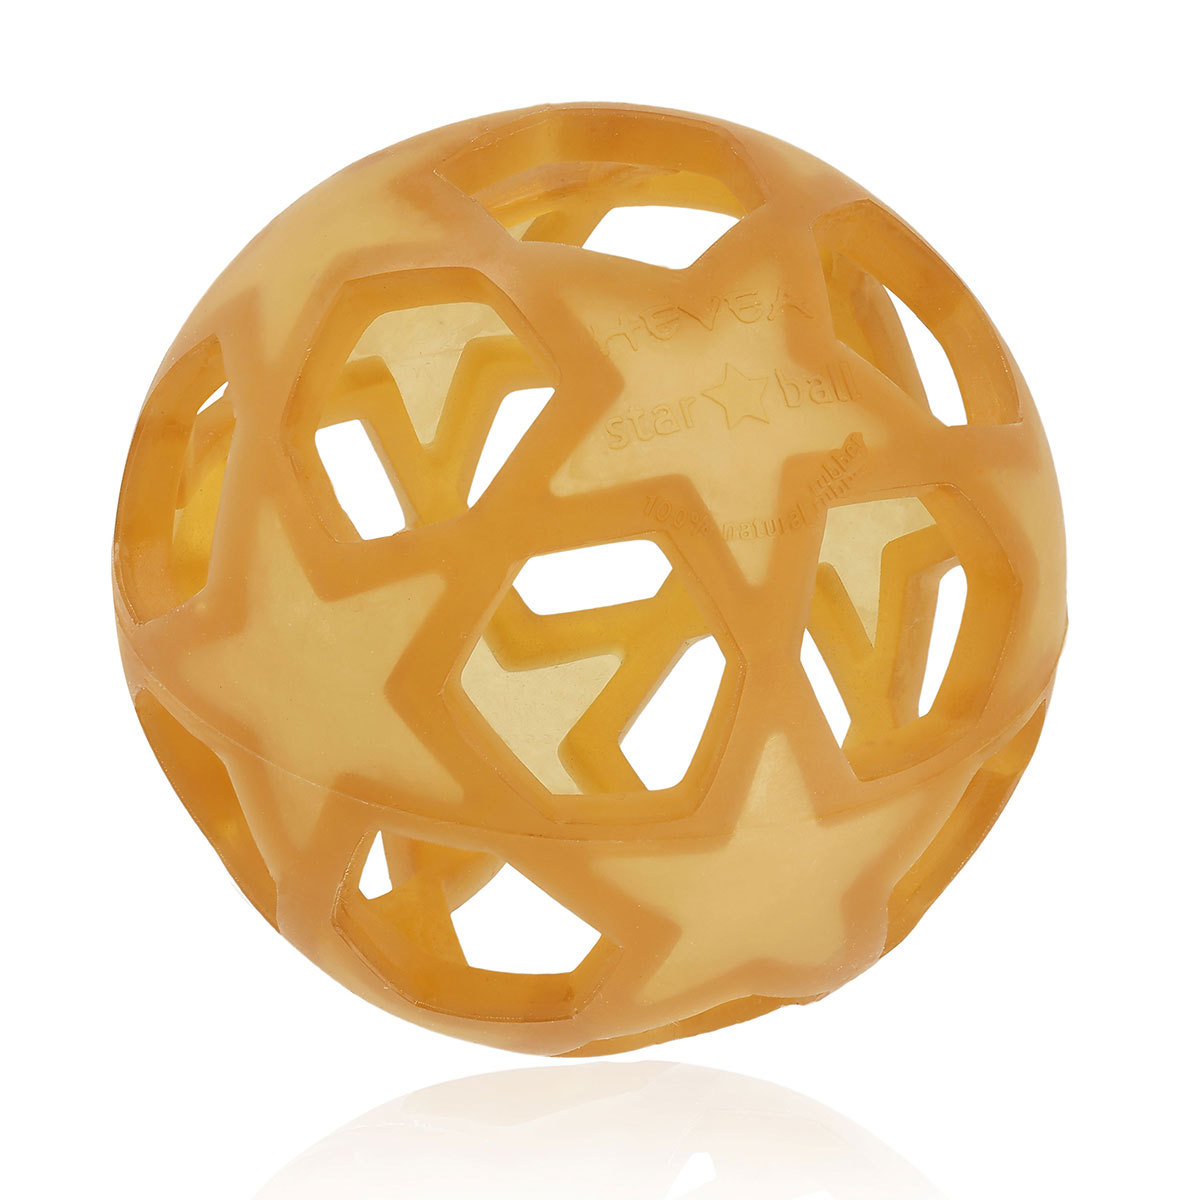 Dentition Star Ball Caoutchouc Naturel - Jaune Star Ball Caoutchouc Naturel - Jaune